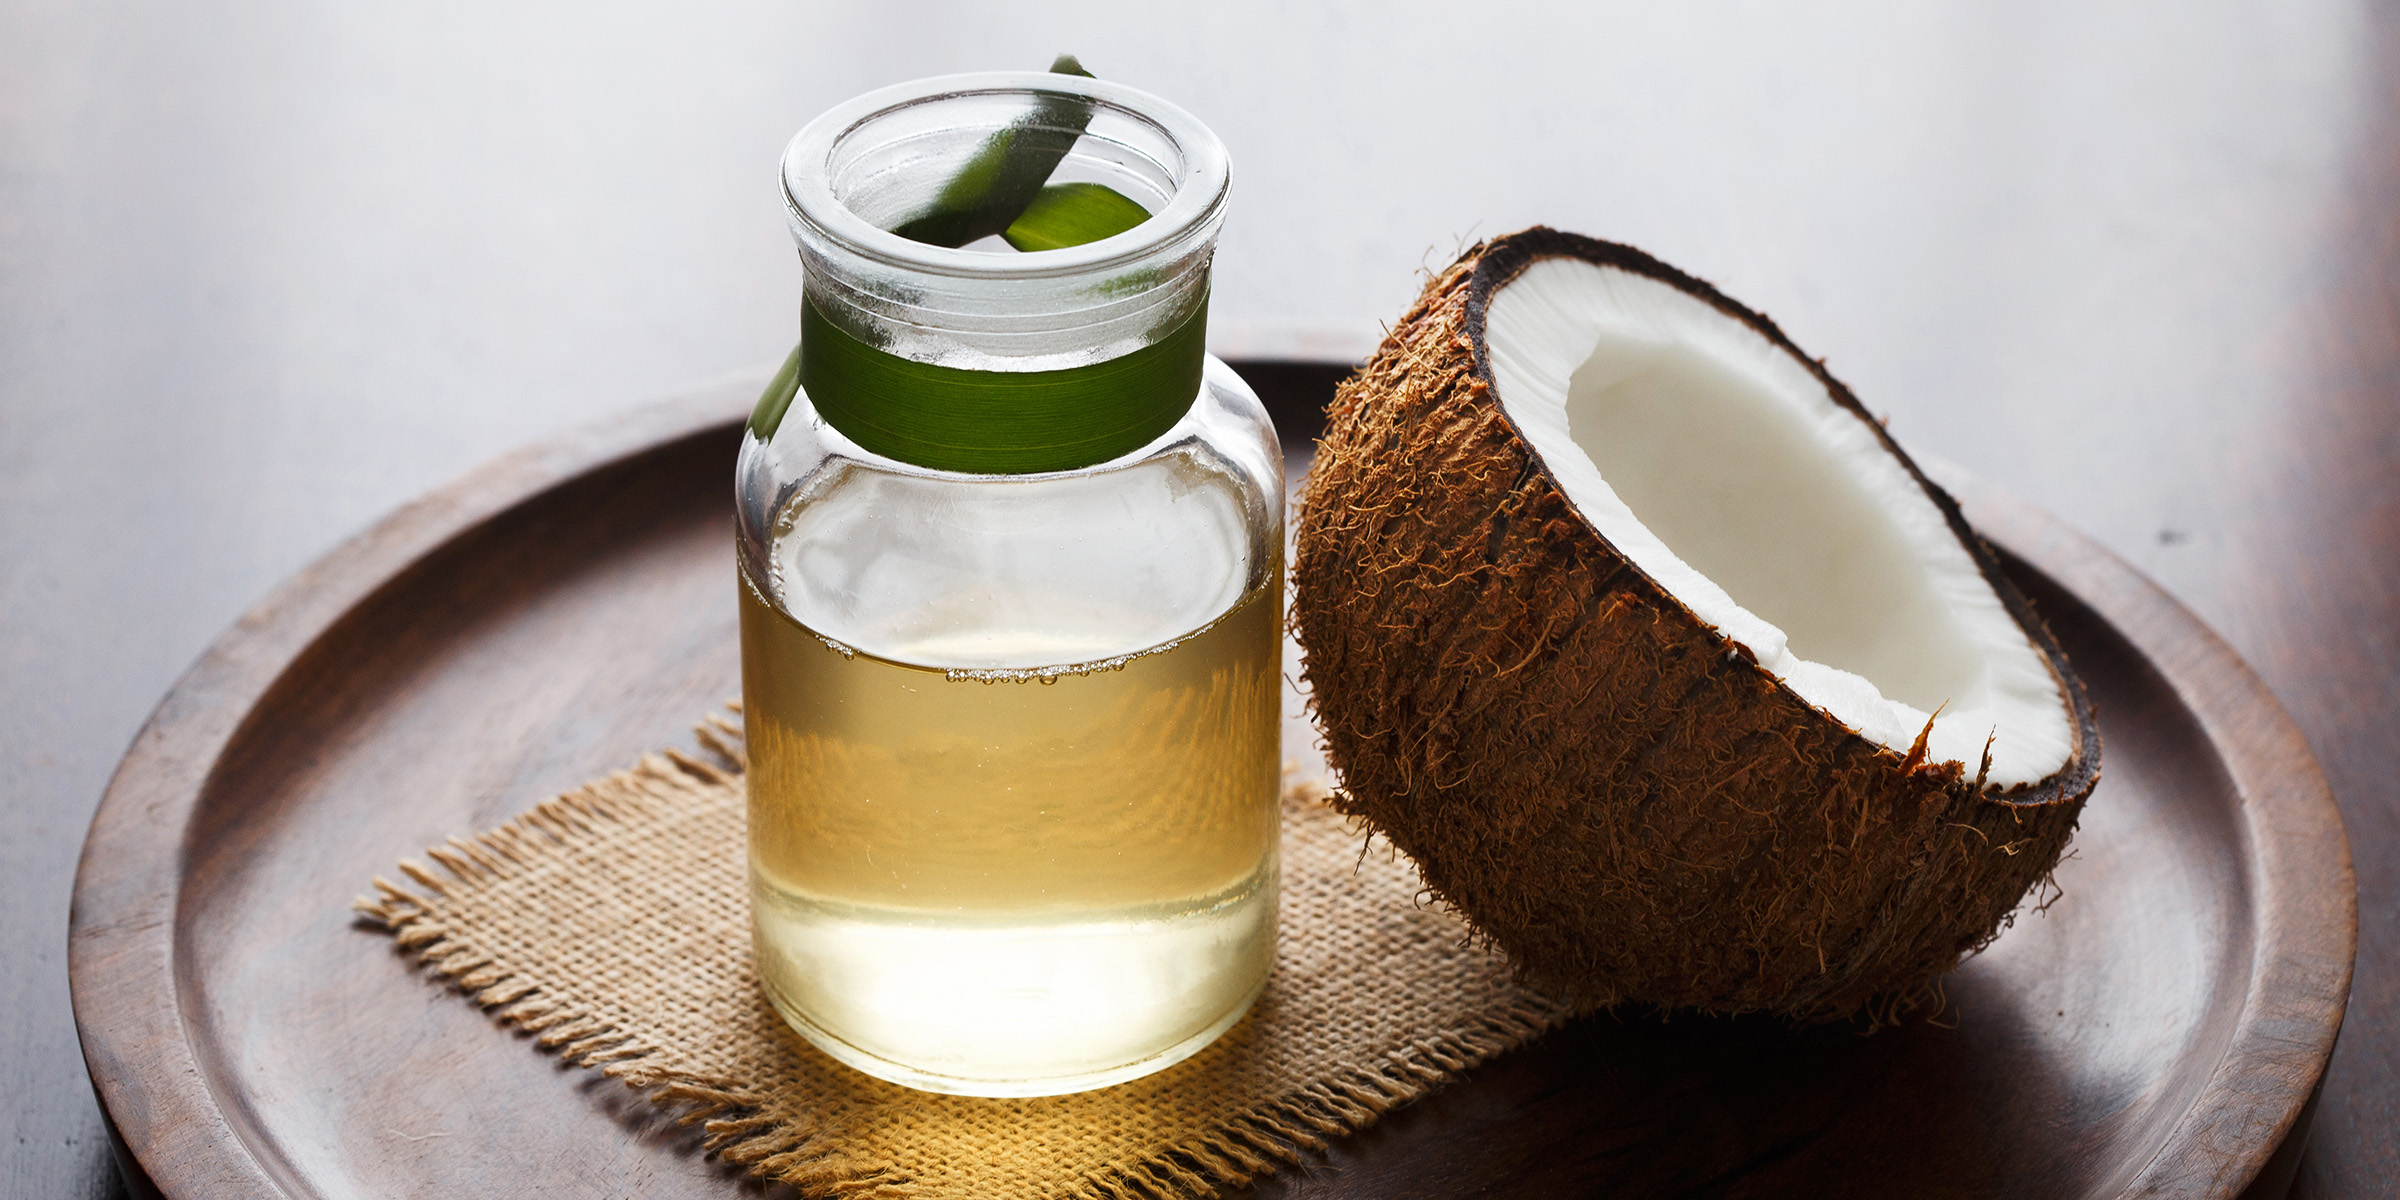 This is why coconut oil is one stop solution for most summer problems